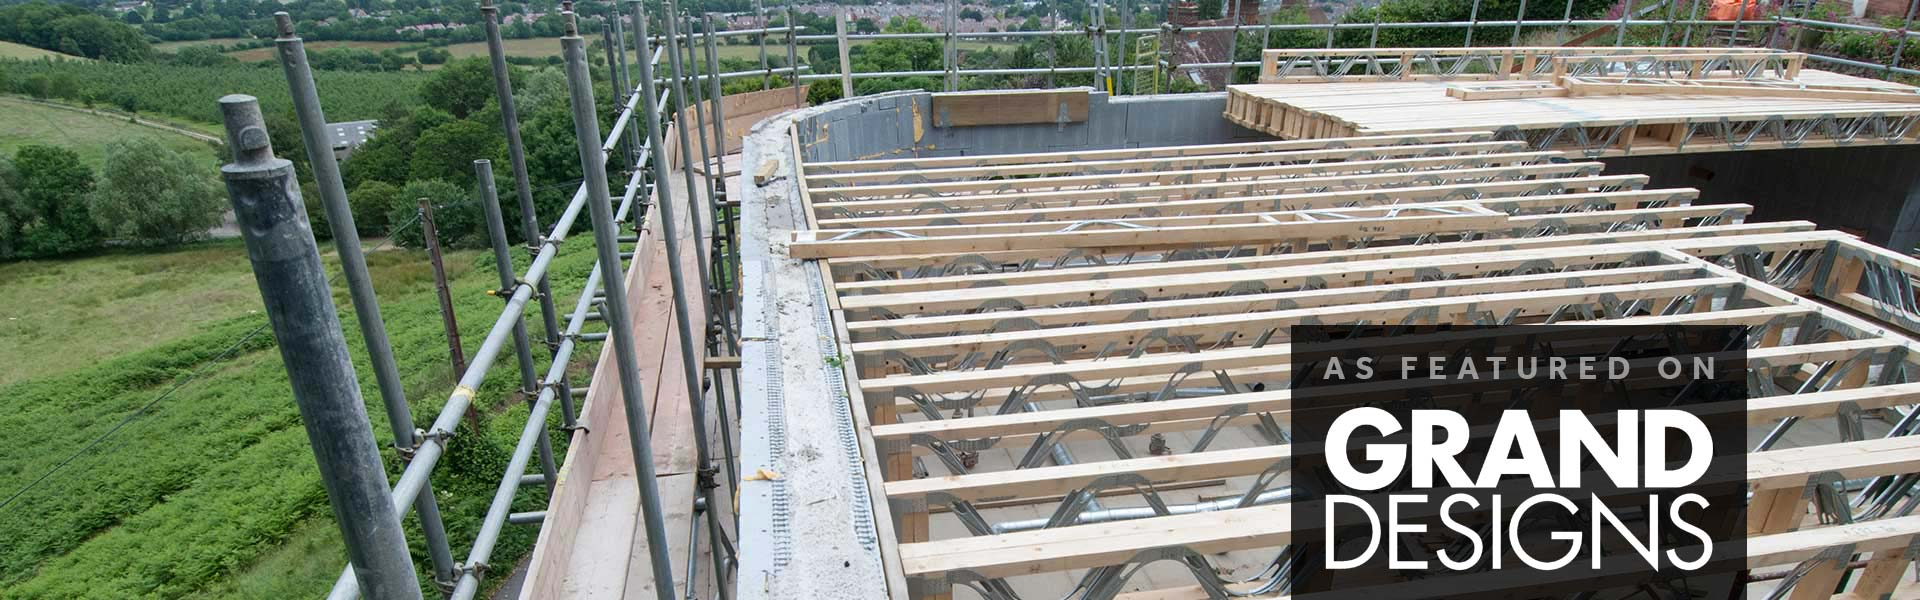 Roof Trusses for Malvern Hills